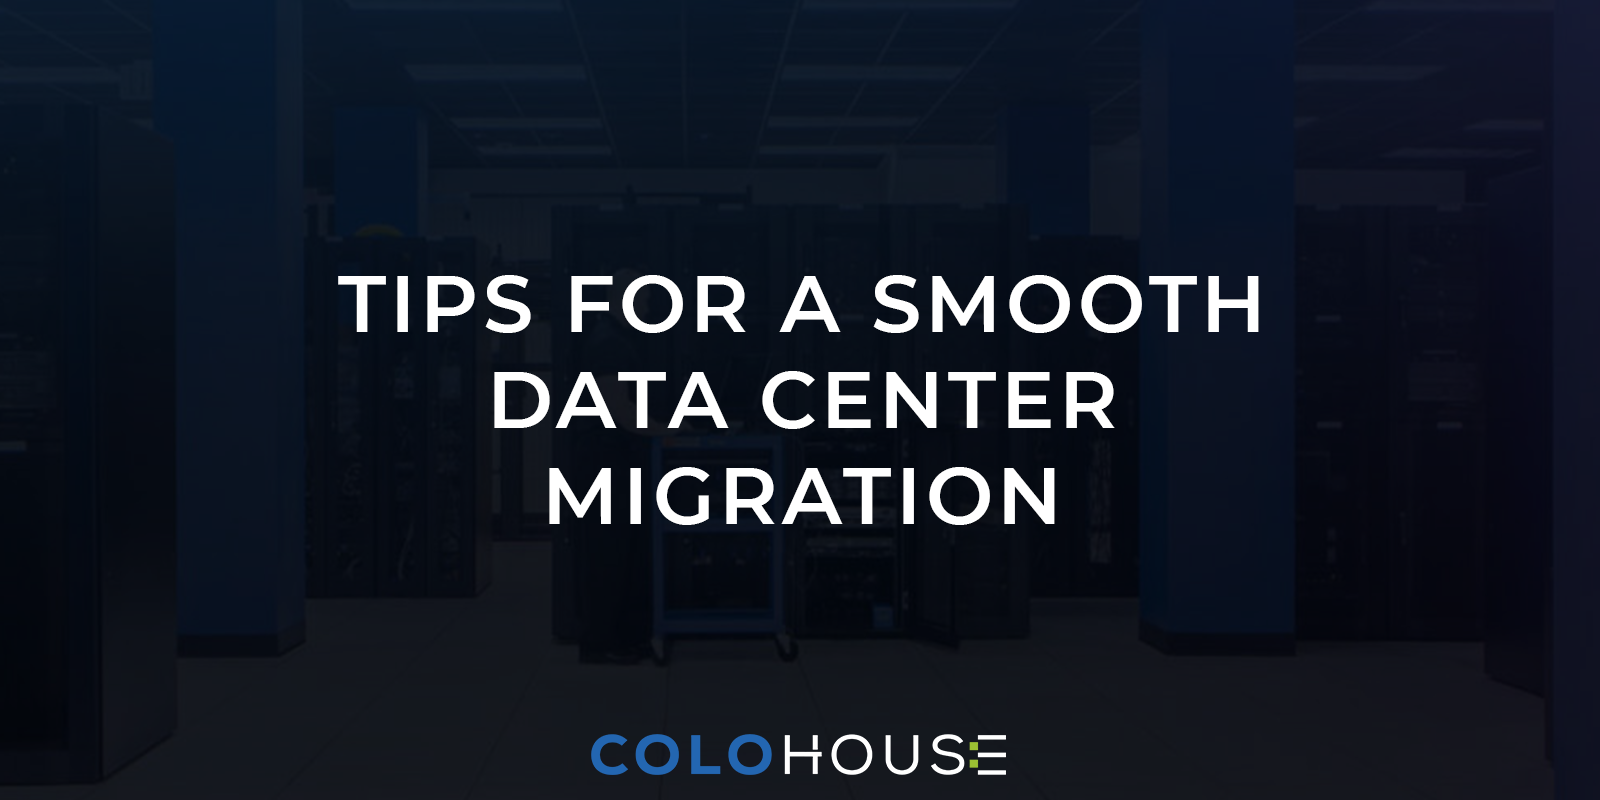 blog title: tips for a smooth data center migration